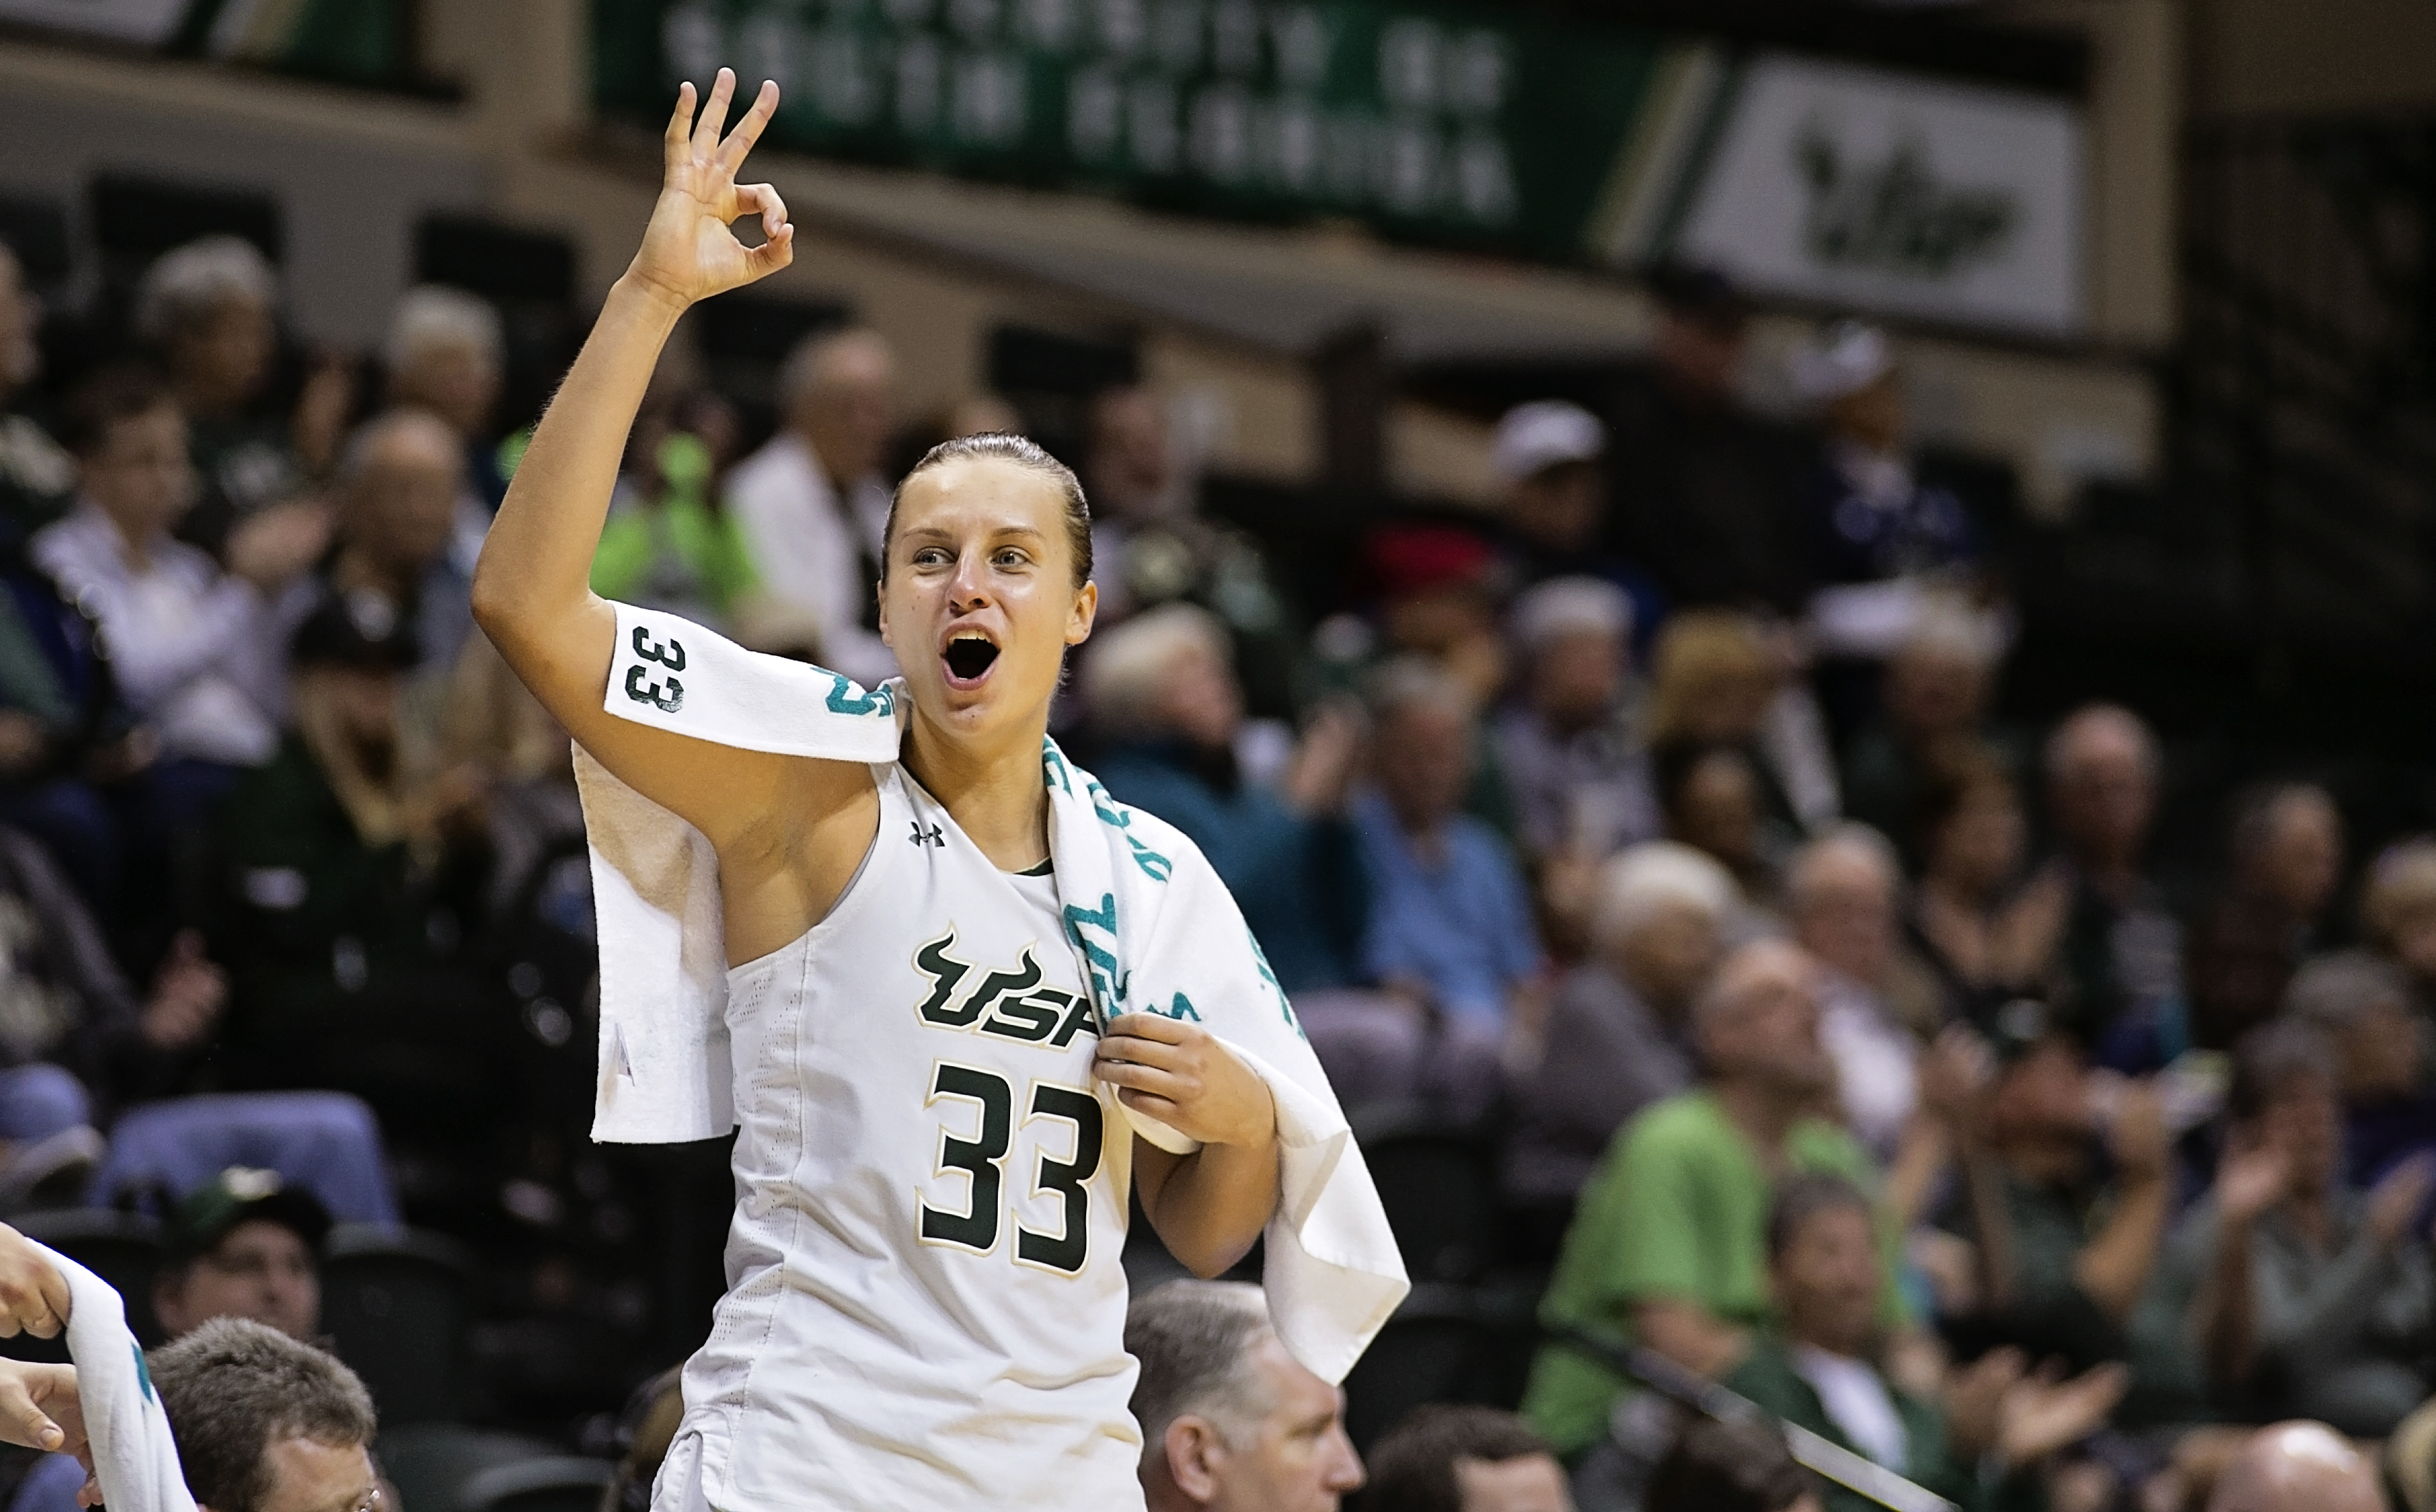 Lakss hit 11 three-pointers for USF./CARMEN MANDATO